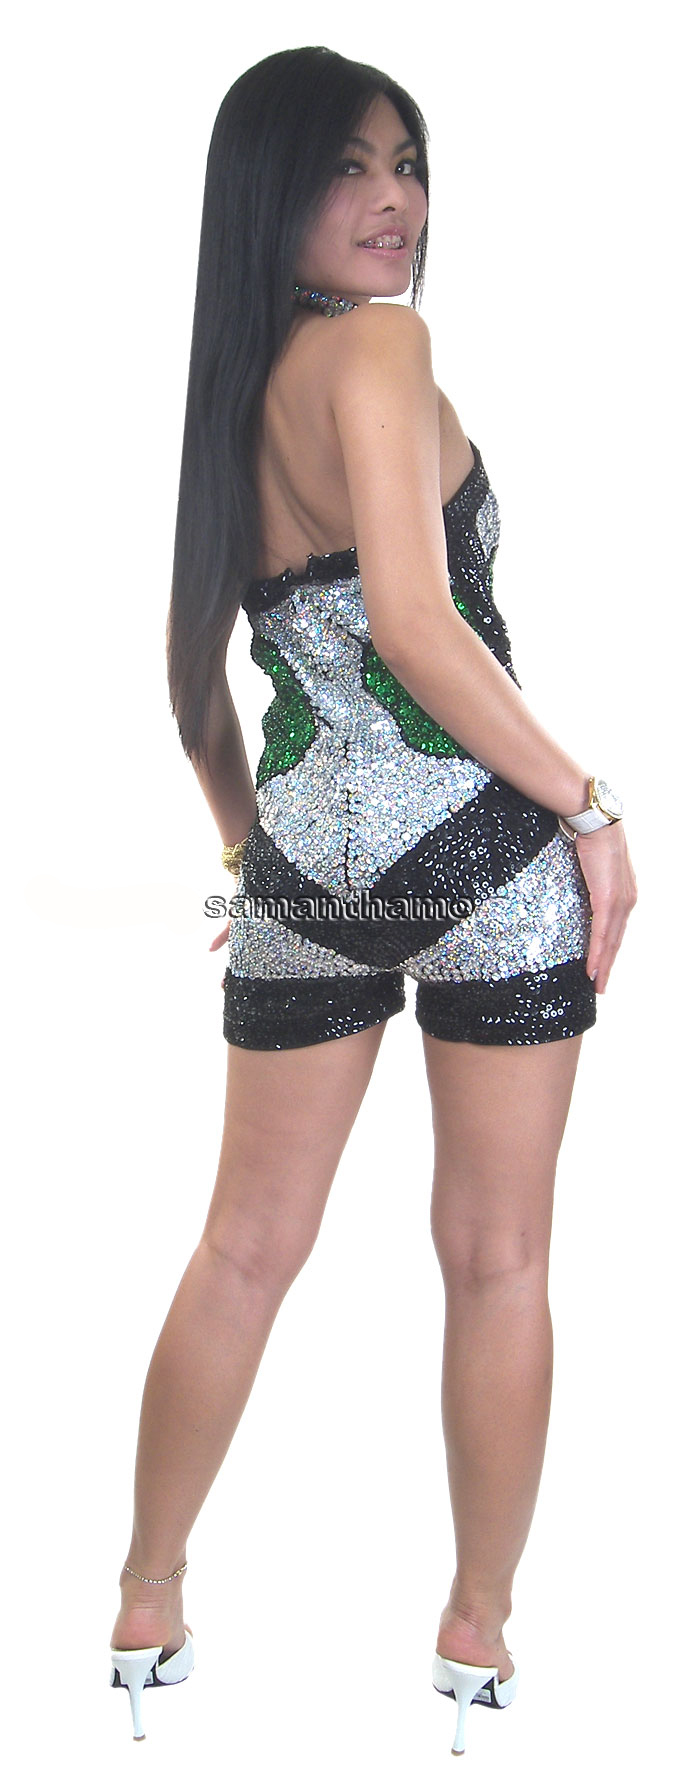 https://michaeljacksoncelebrityclothing.com/sequin-cabaret-clothing/Madonna-Leotard-hot-Pants.jpg